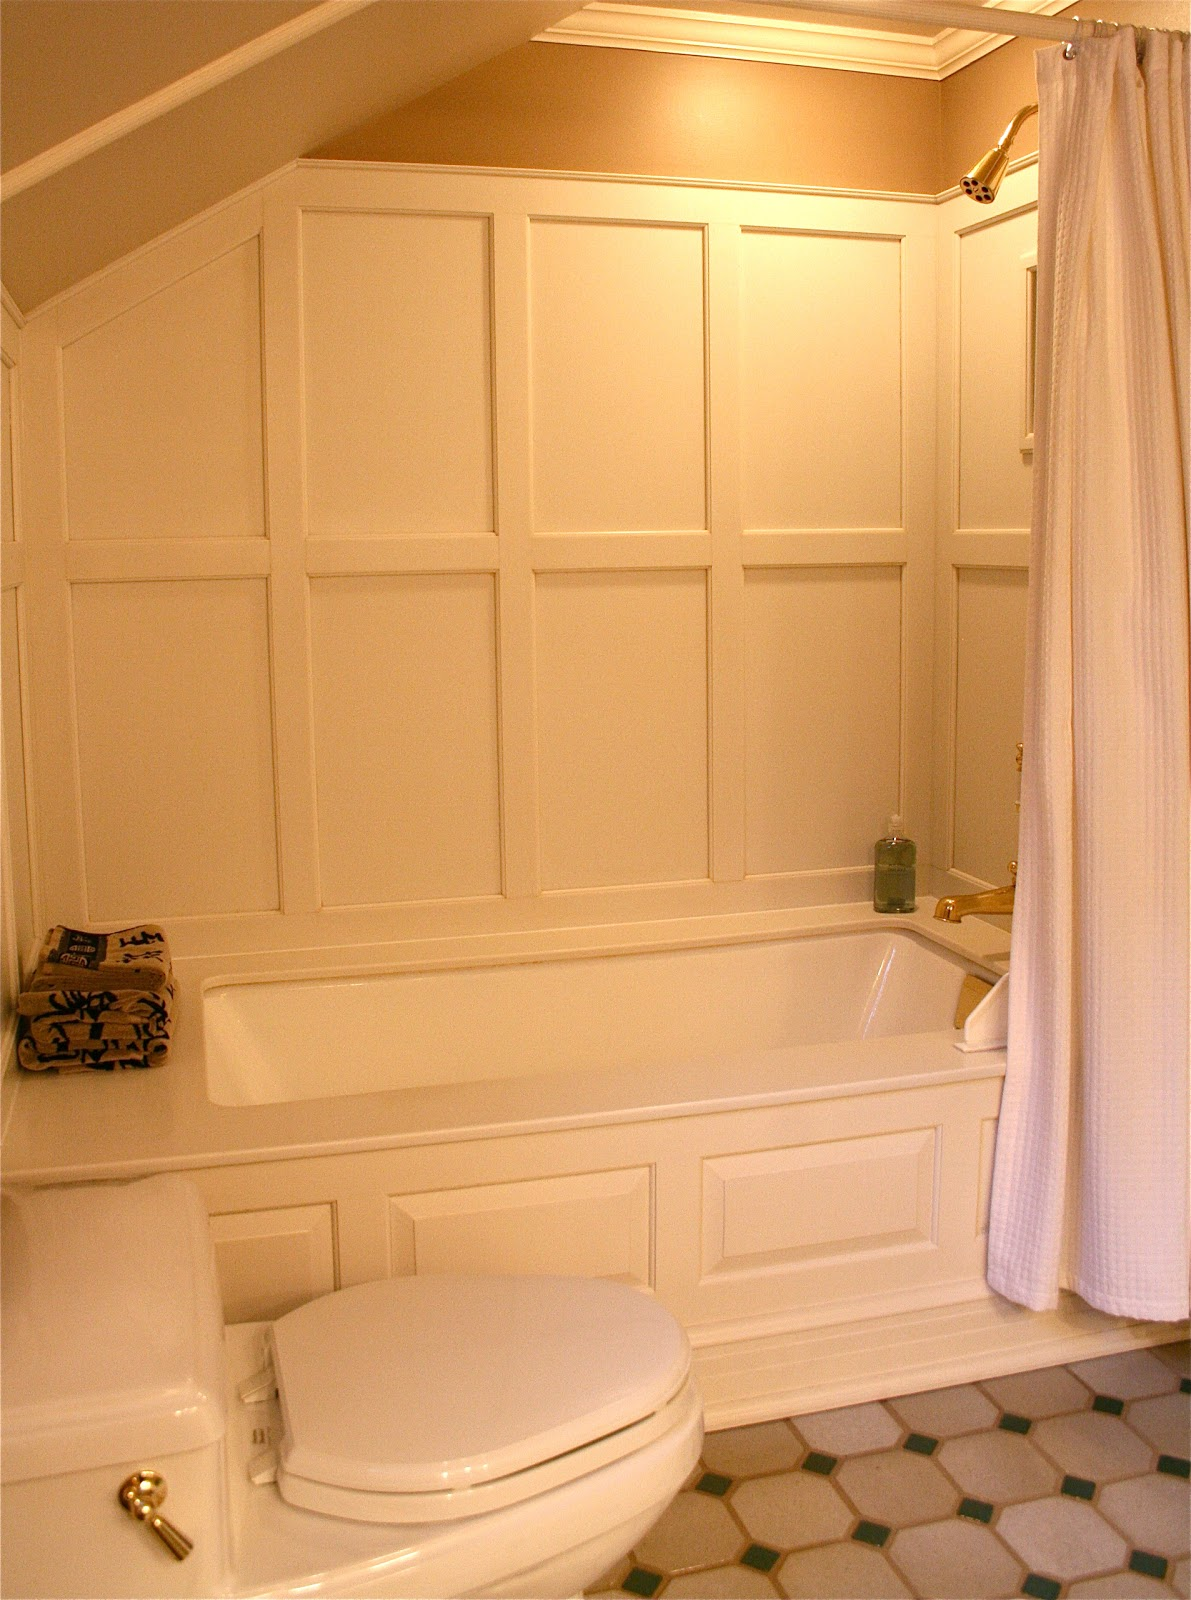 Antiqueaholics: BATHTUB SURROUND PANELED WITH CORIAN